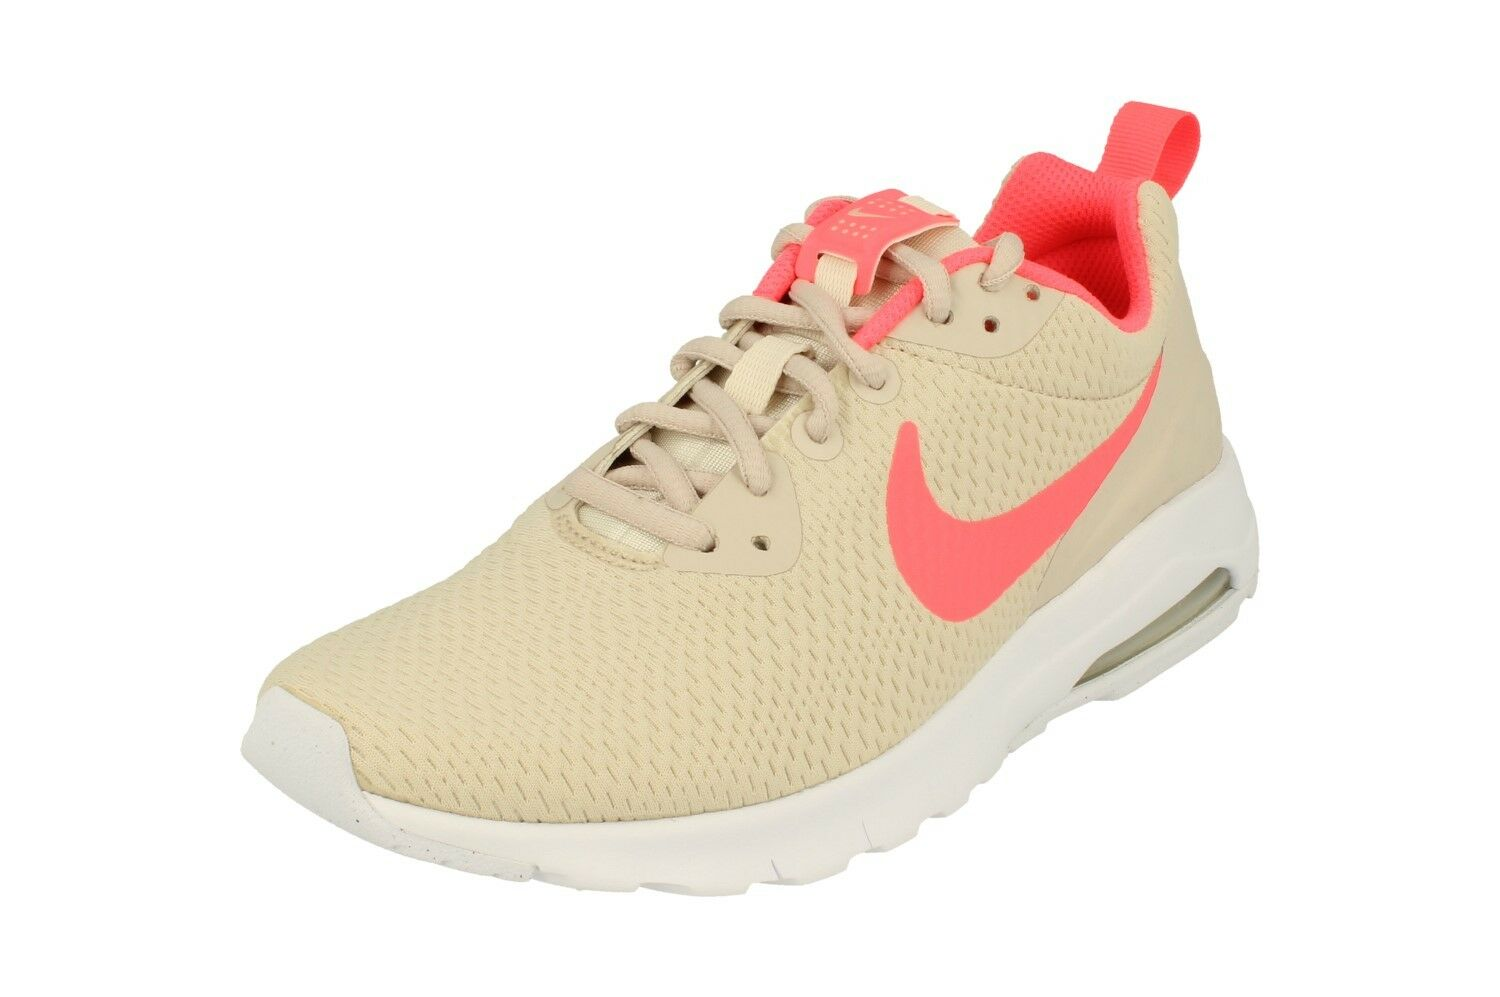 Nike Womens Air Max Motion Lw Running Trainers 833662 Sneakers shoes 100